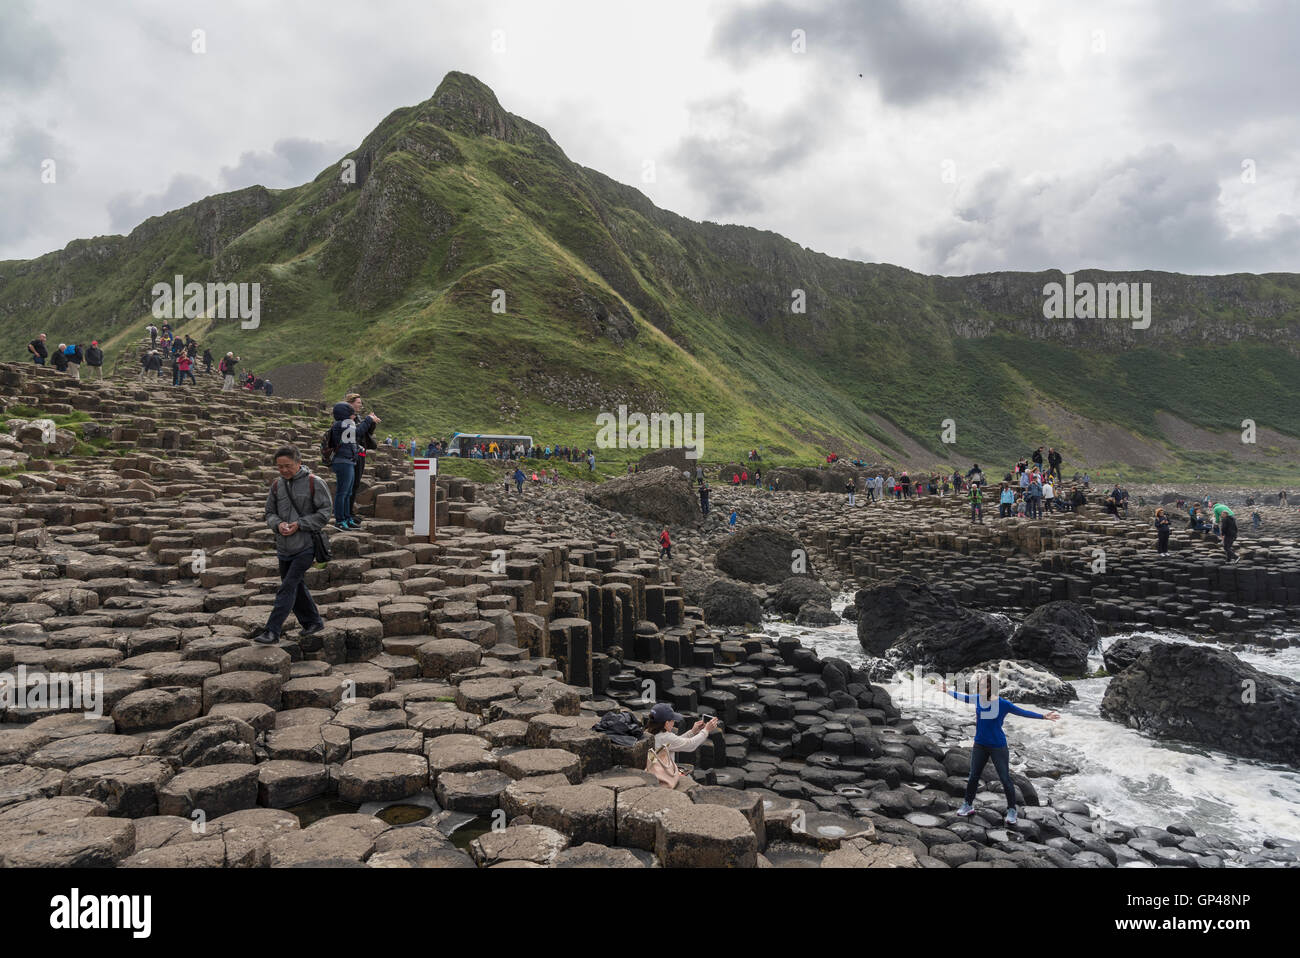 People walk around Giant's Causeway with hills in the background - Stock Image